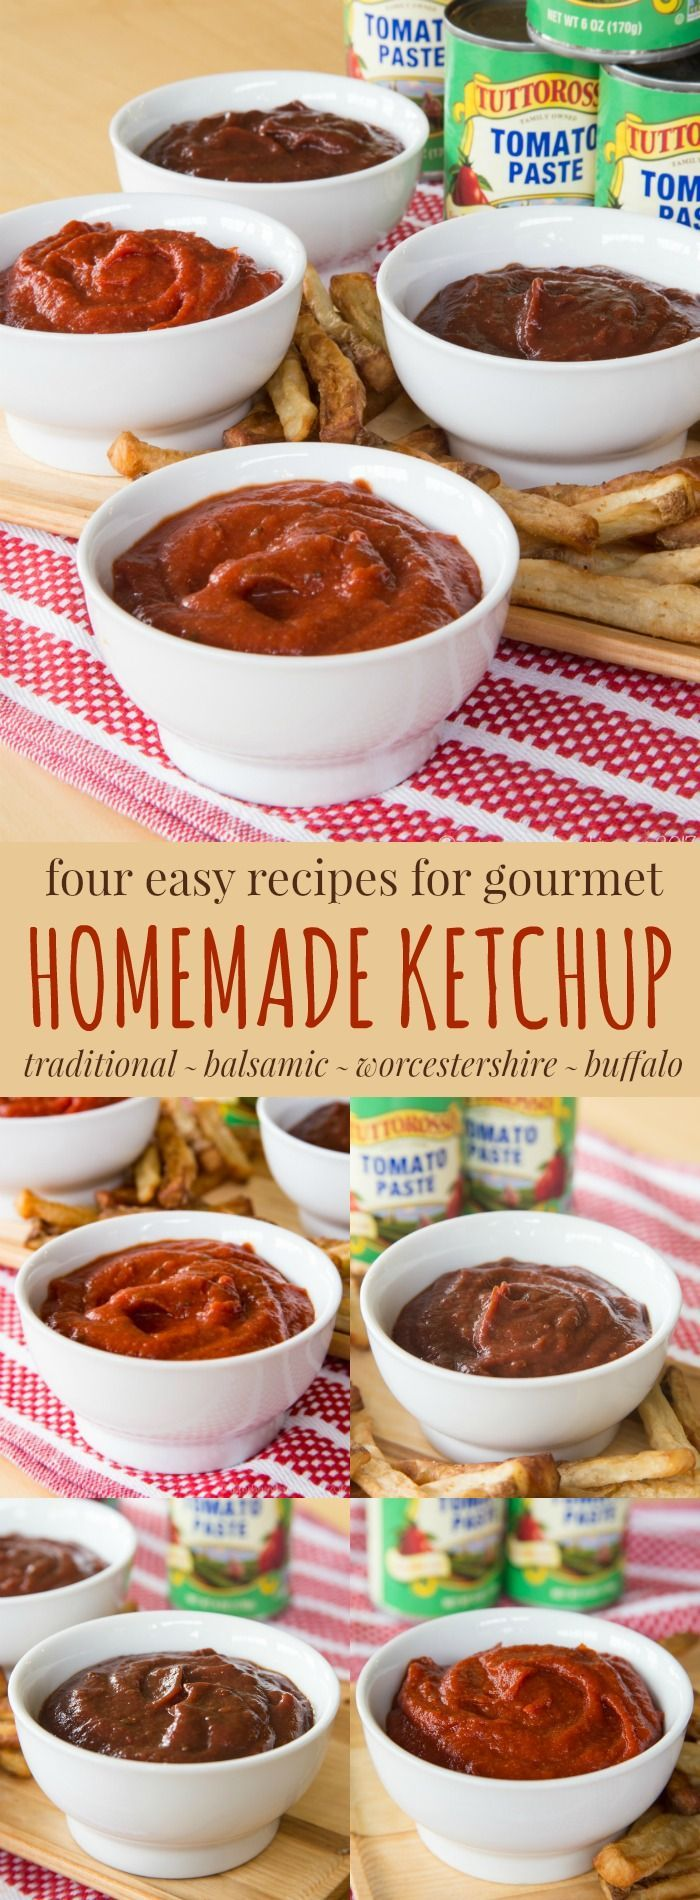 4 Easy Recipes for Gourmet Homemade Ketchup - it takes just minutes to make homemade condiments. Traditional, Balsamic, Worcestershire and Buffalo Ketchup recipes start with a can of @tuttorosso tomato paste. #ad